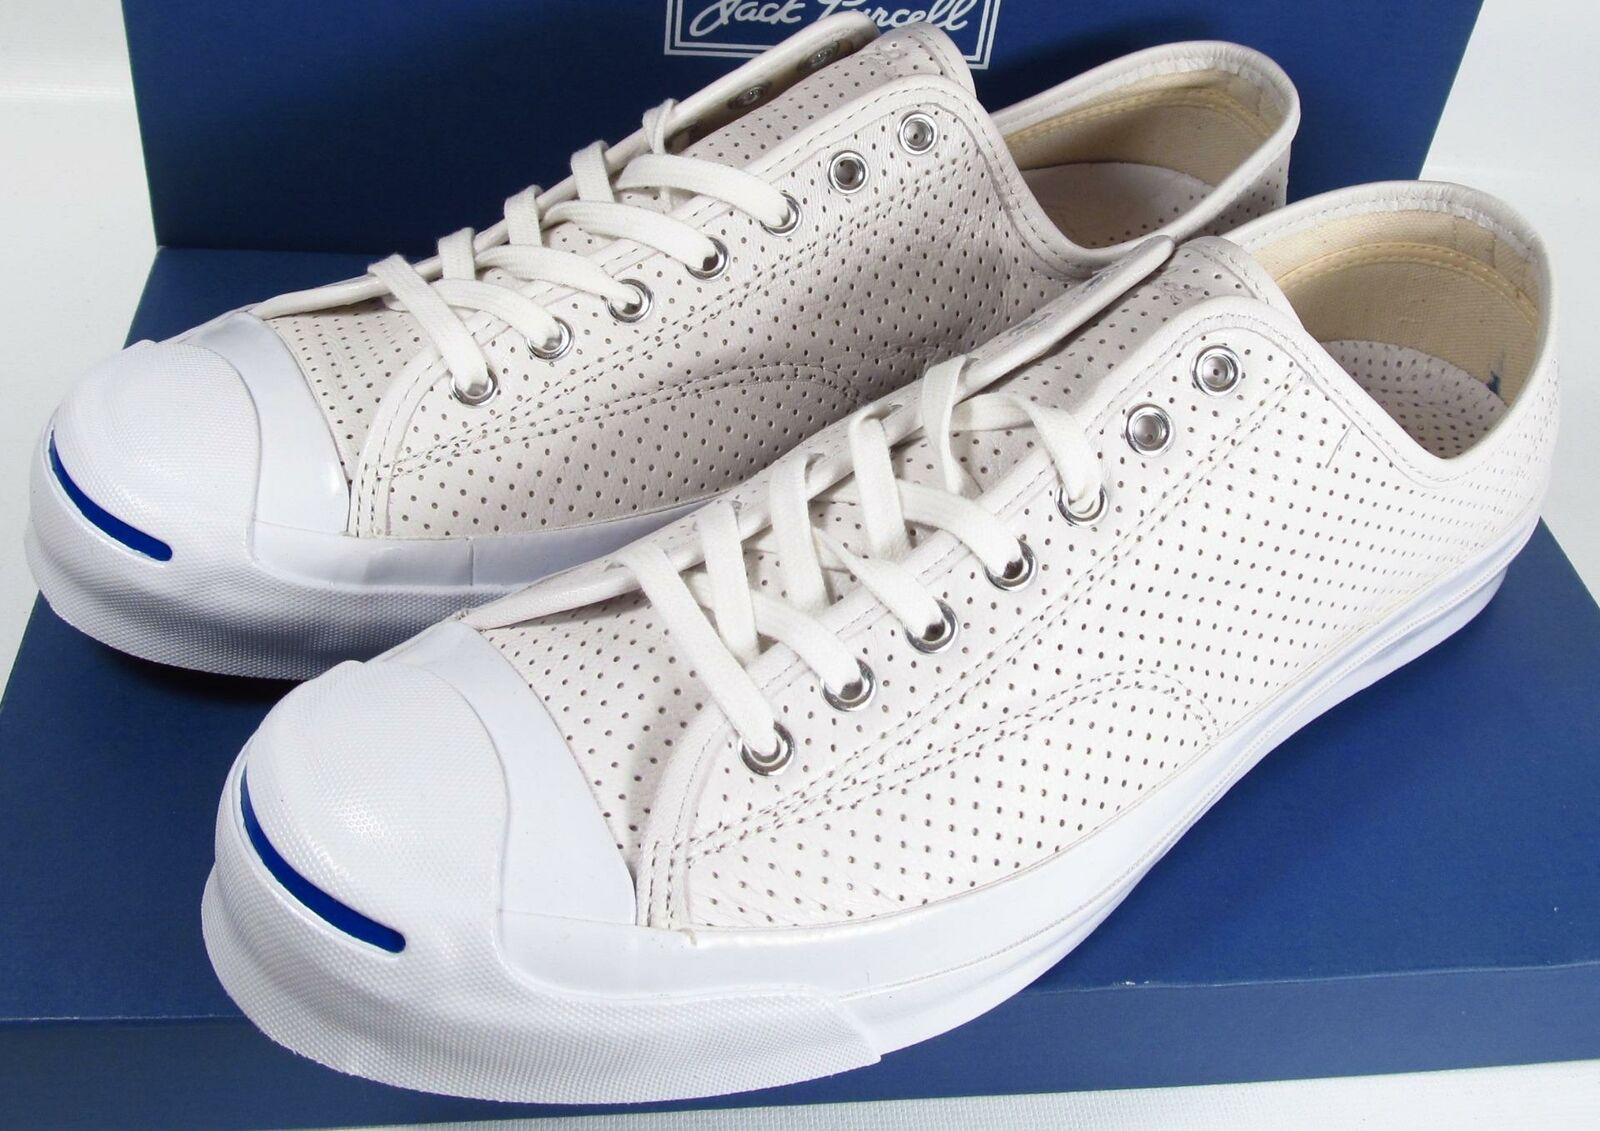 Converse Jack Purcell Signature Perforated Leather WHITE 151476C (11.5 Men's)